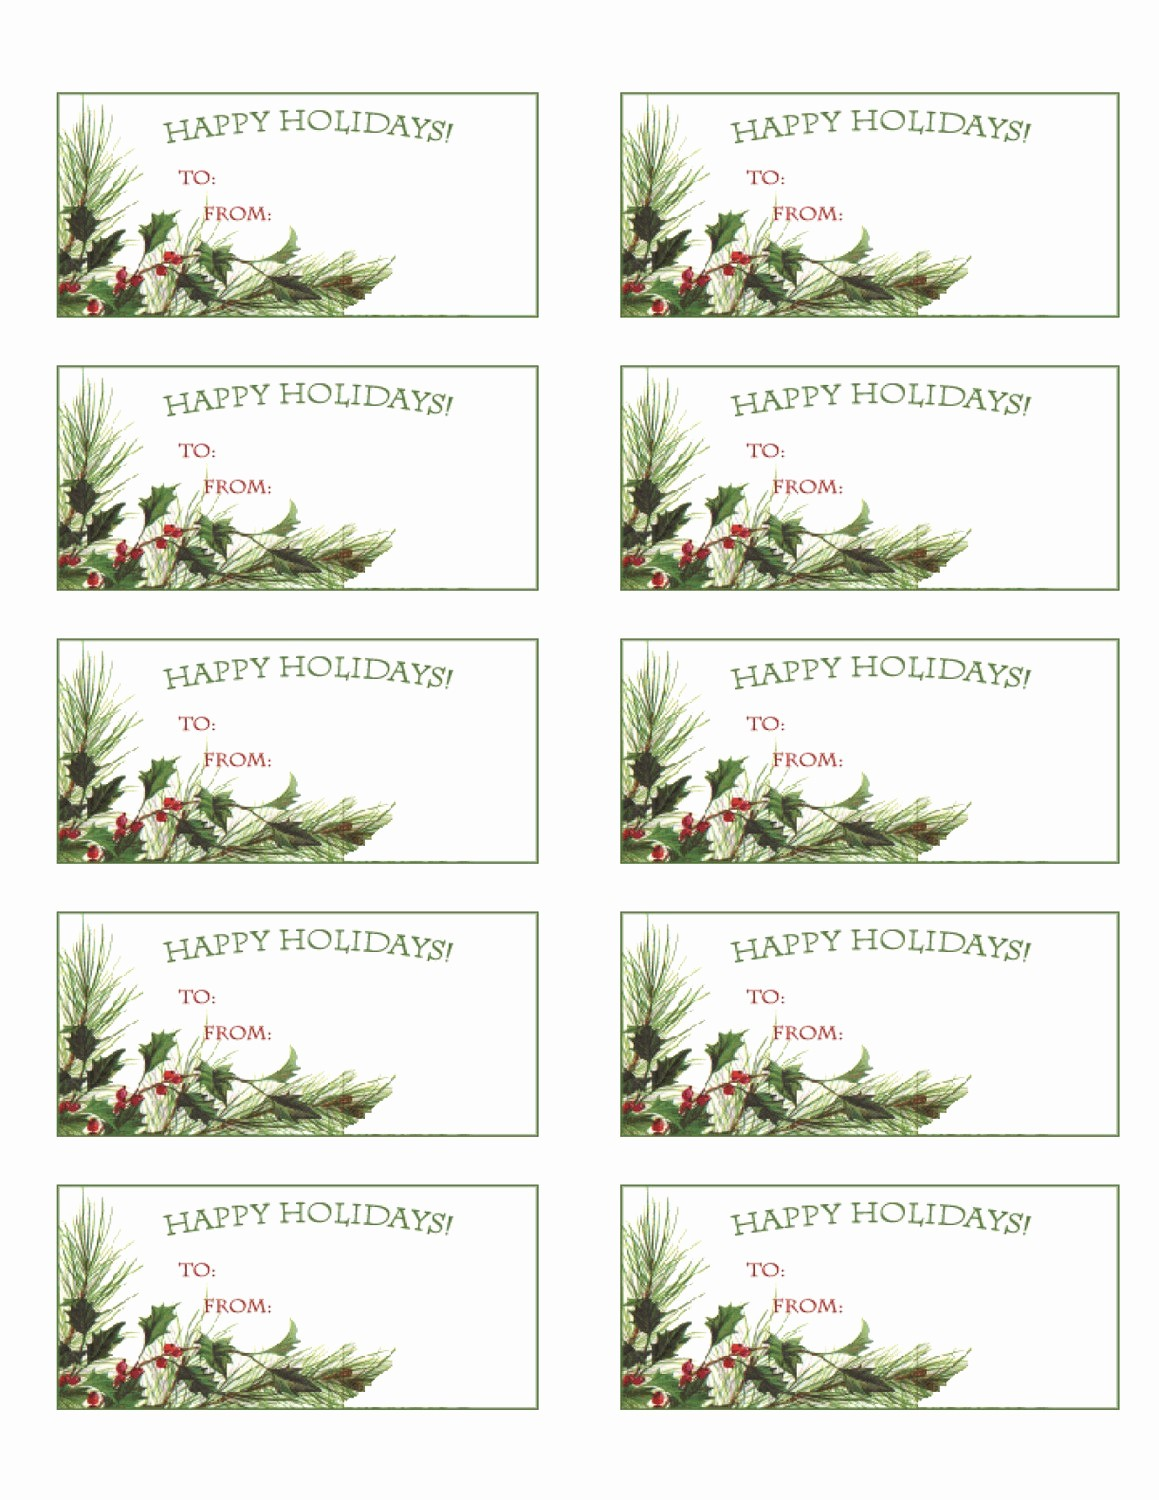 Avery Template 5263 Free Download Unique Printable Holiday T Tags Christmas Labels Party Pdf by